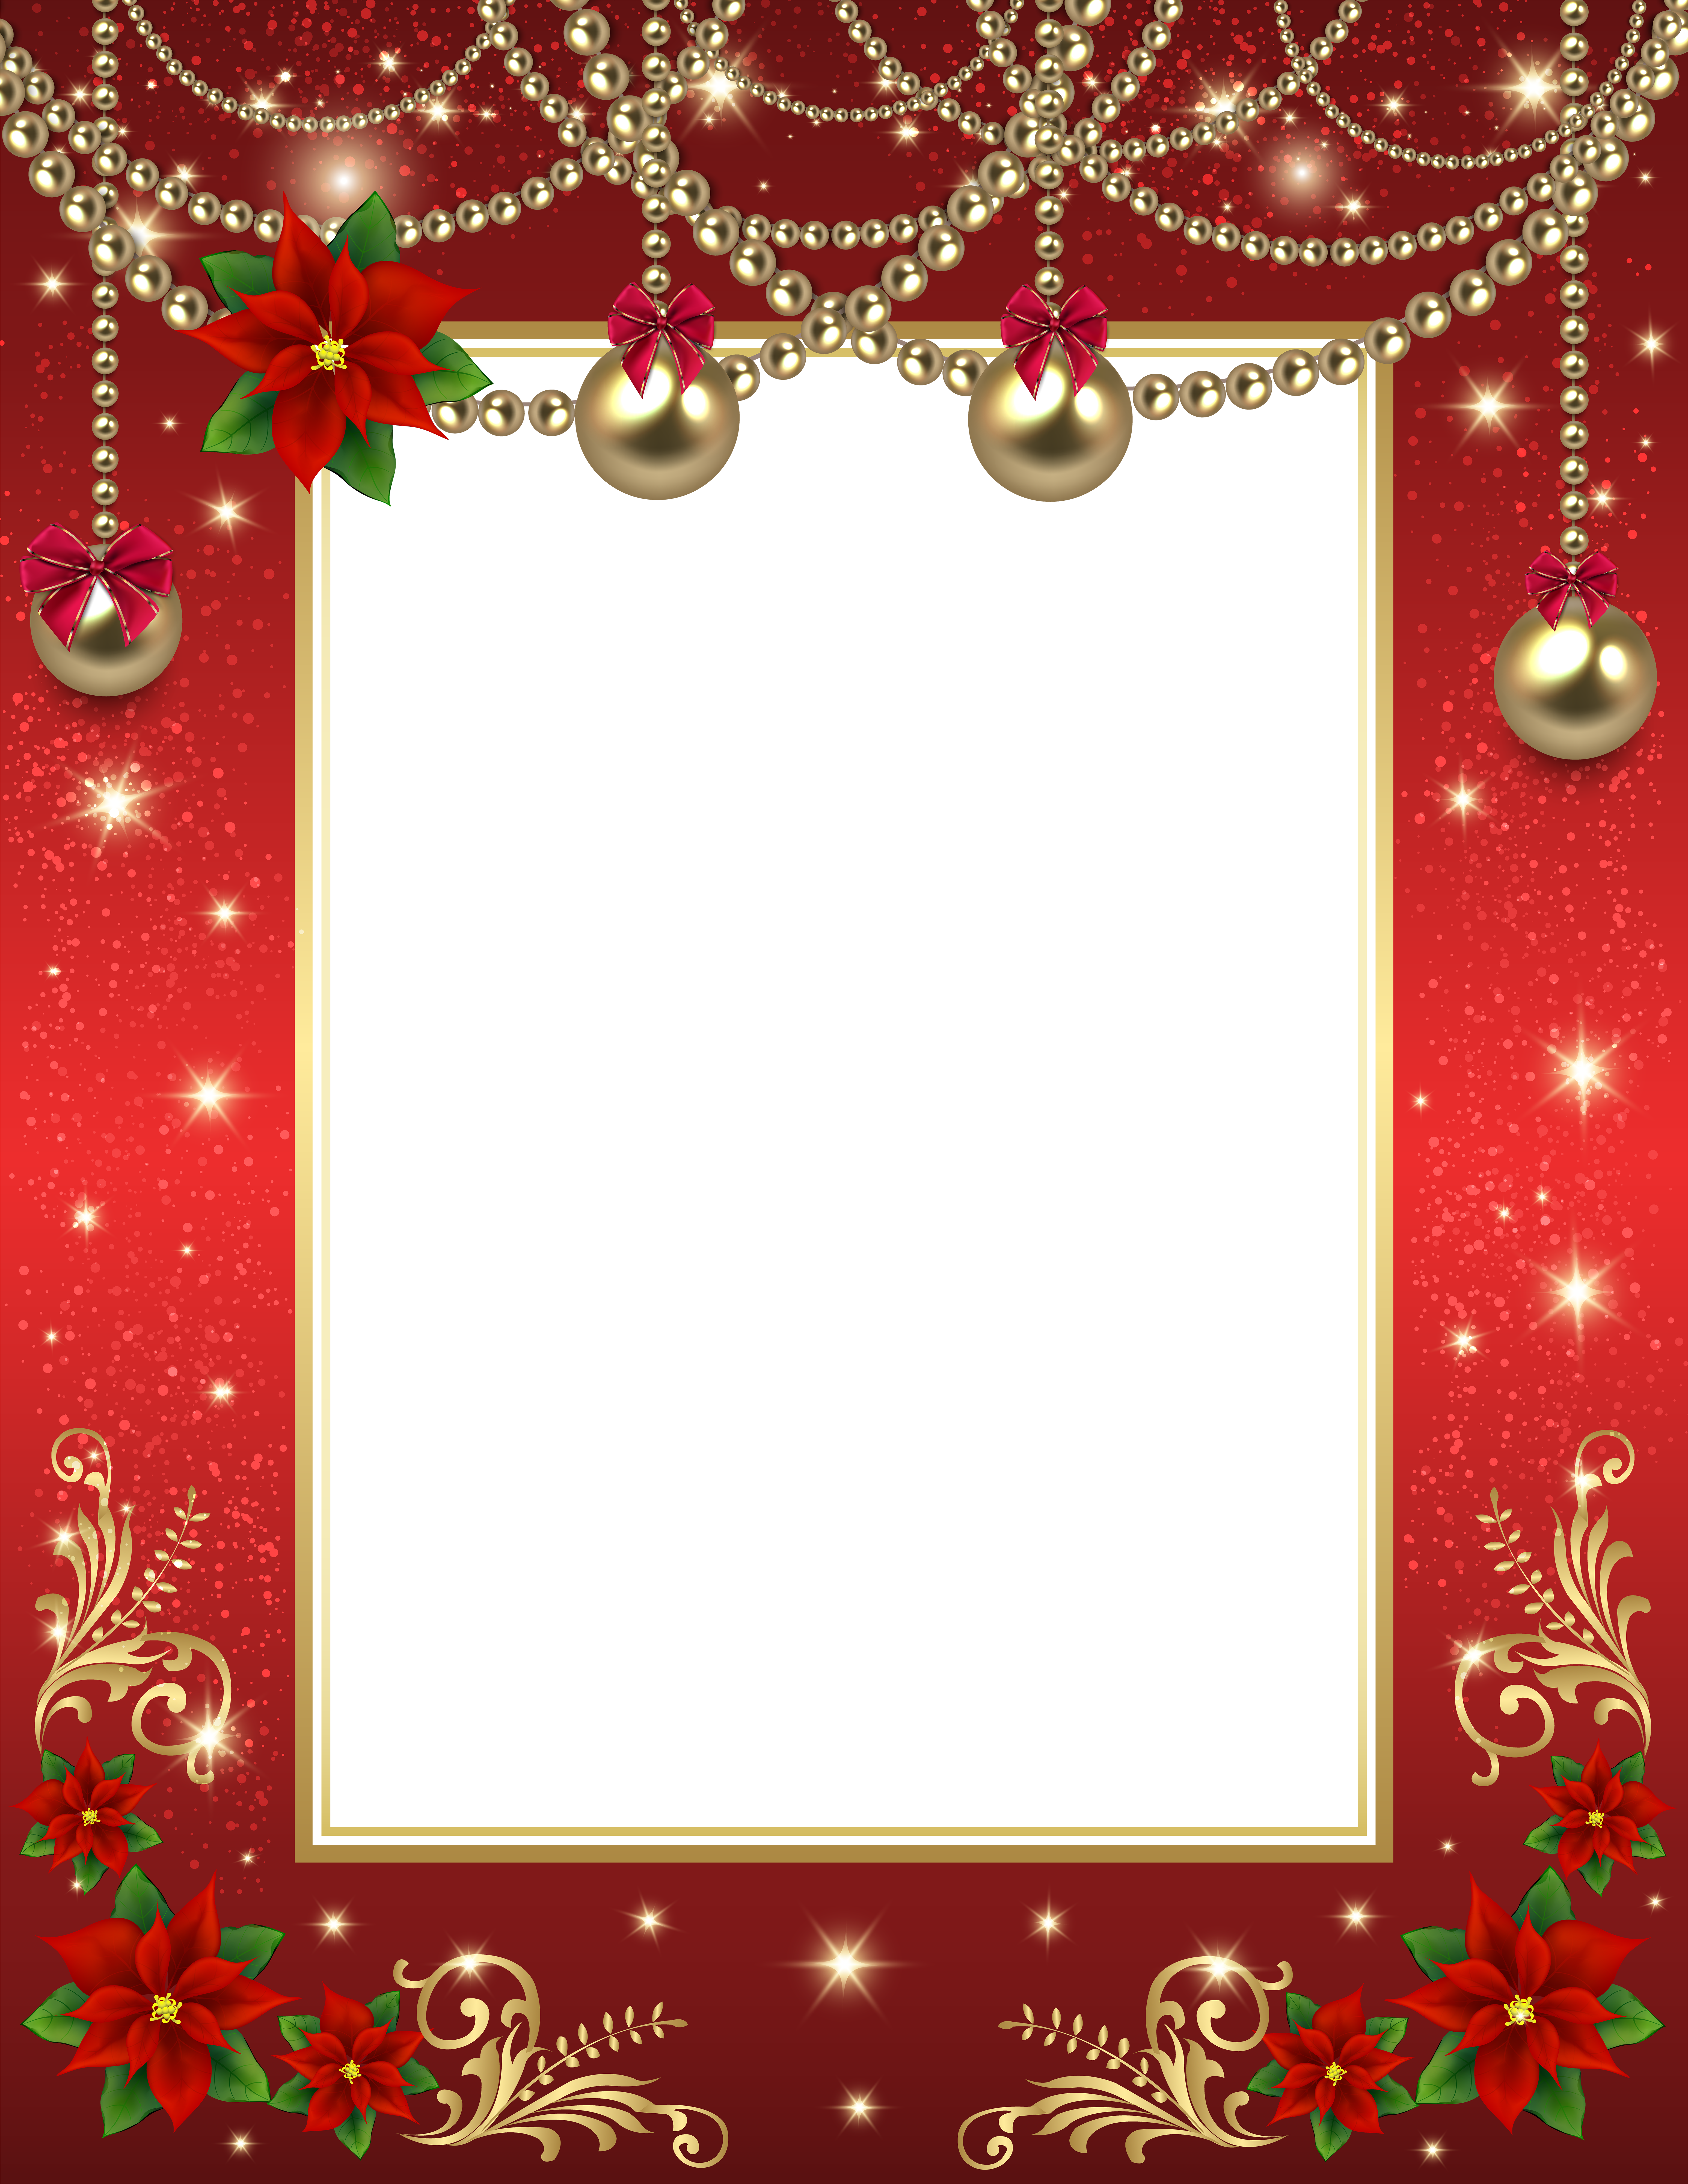 Christmas borders .png. Transparent png photo frame